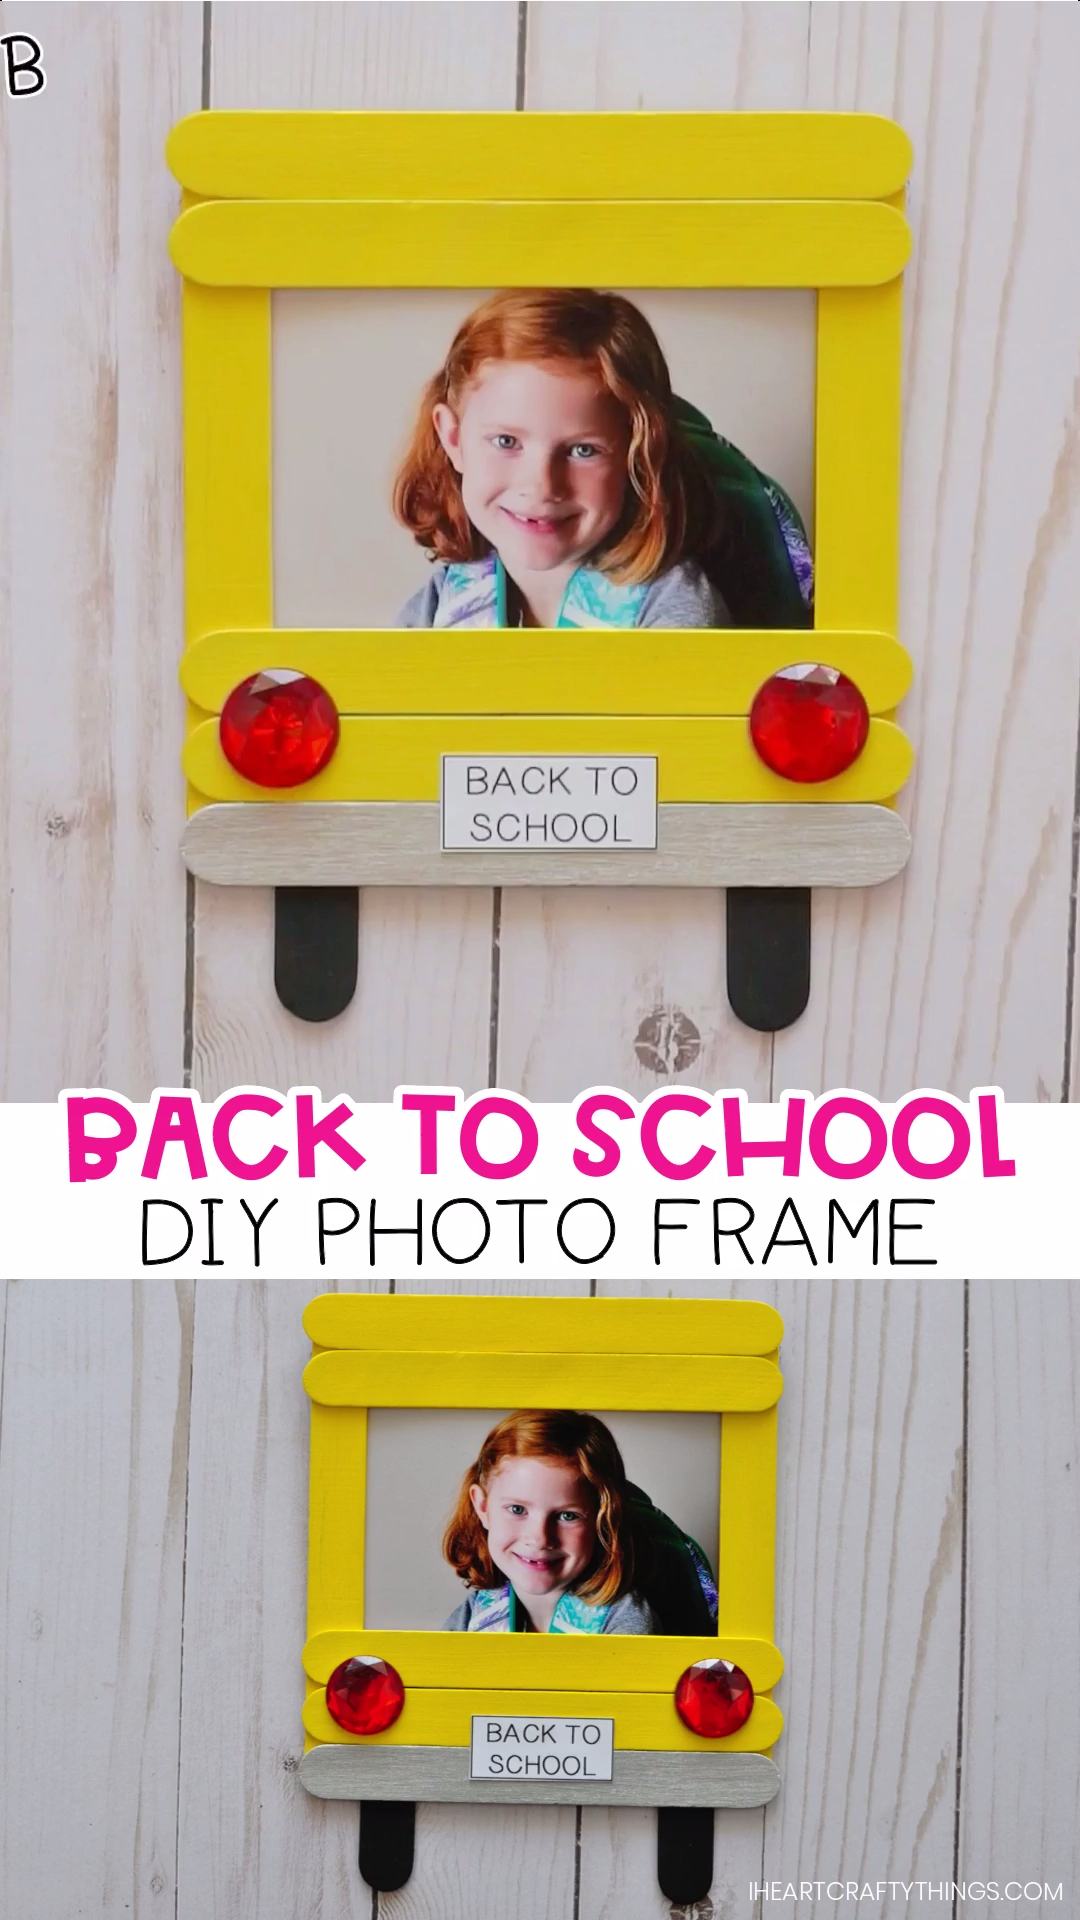 How to Make a DIY Back to School Photo Frame #backtoschool